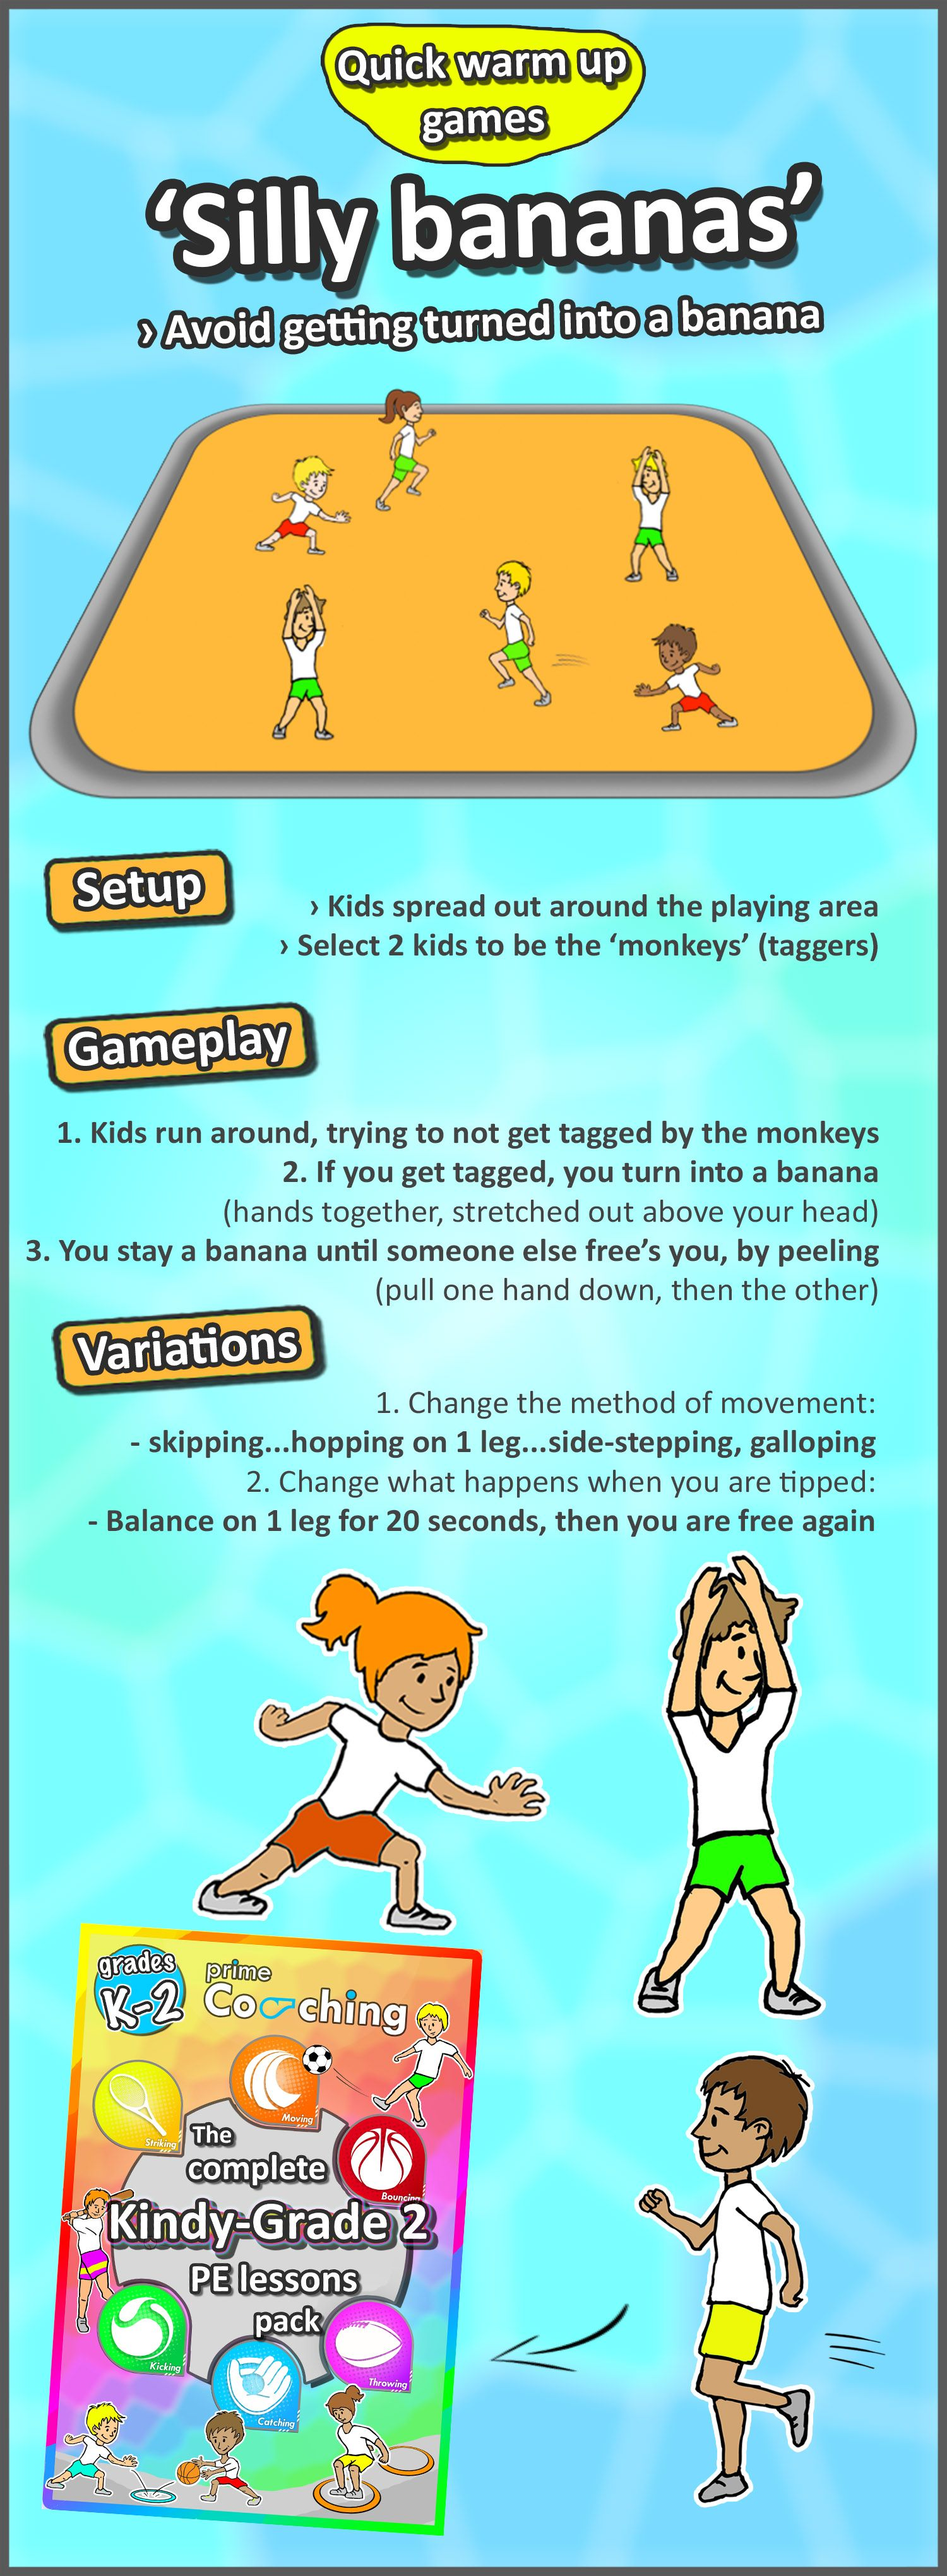 Silly Bananas A Simple But Fun Tip And Tag Warm Up Game For Your Kids Try It Out Then Check